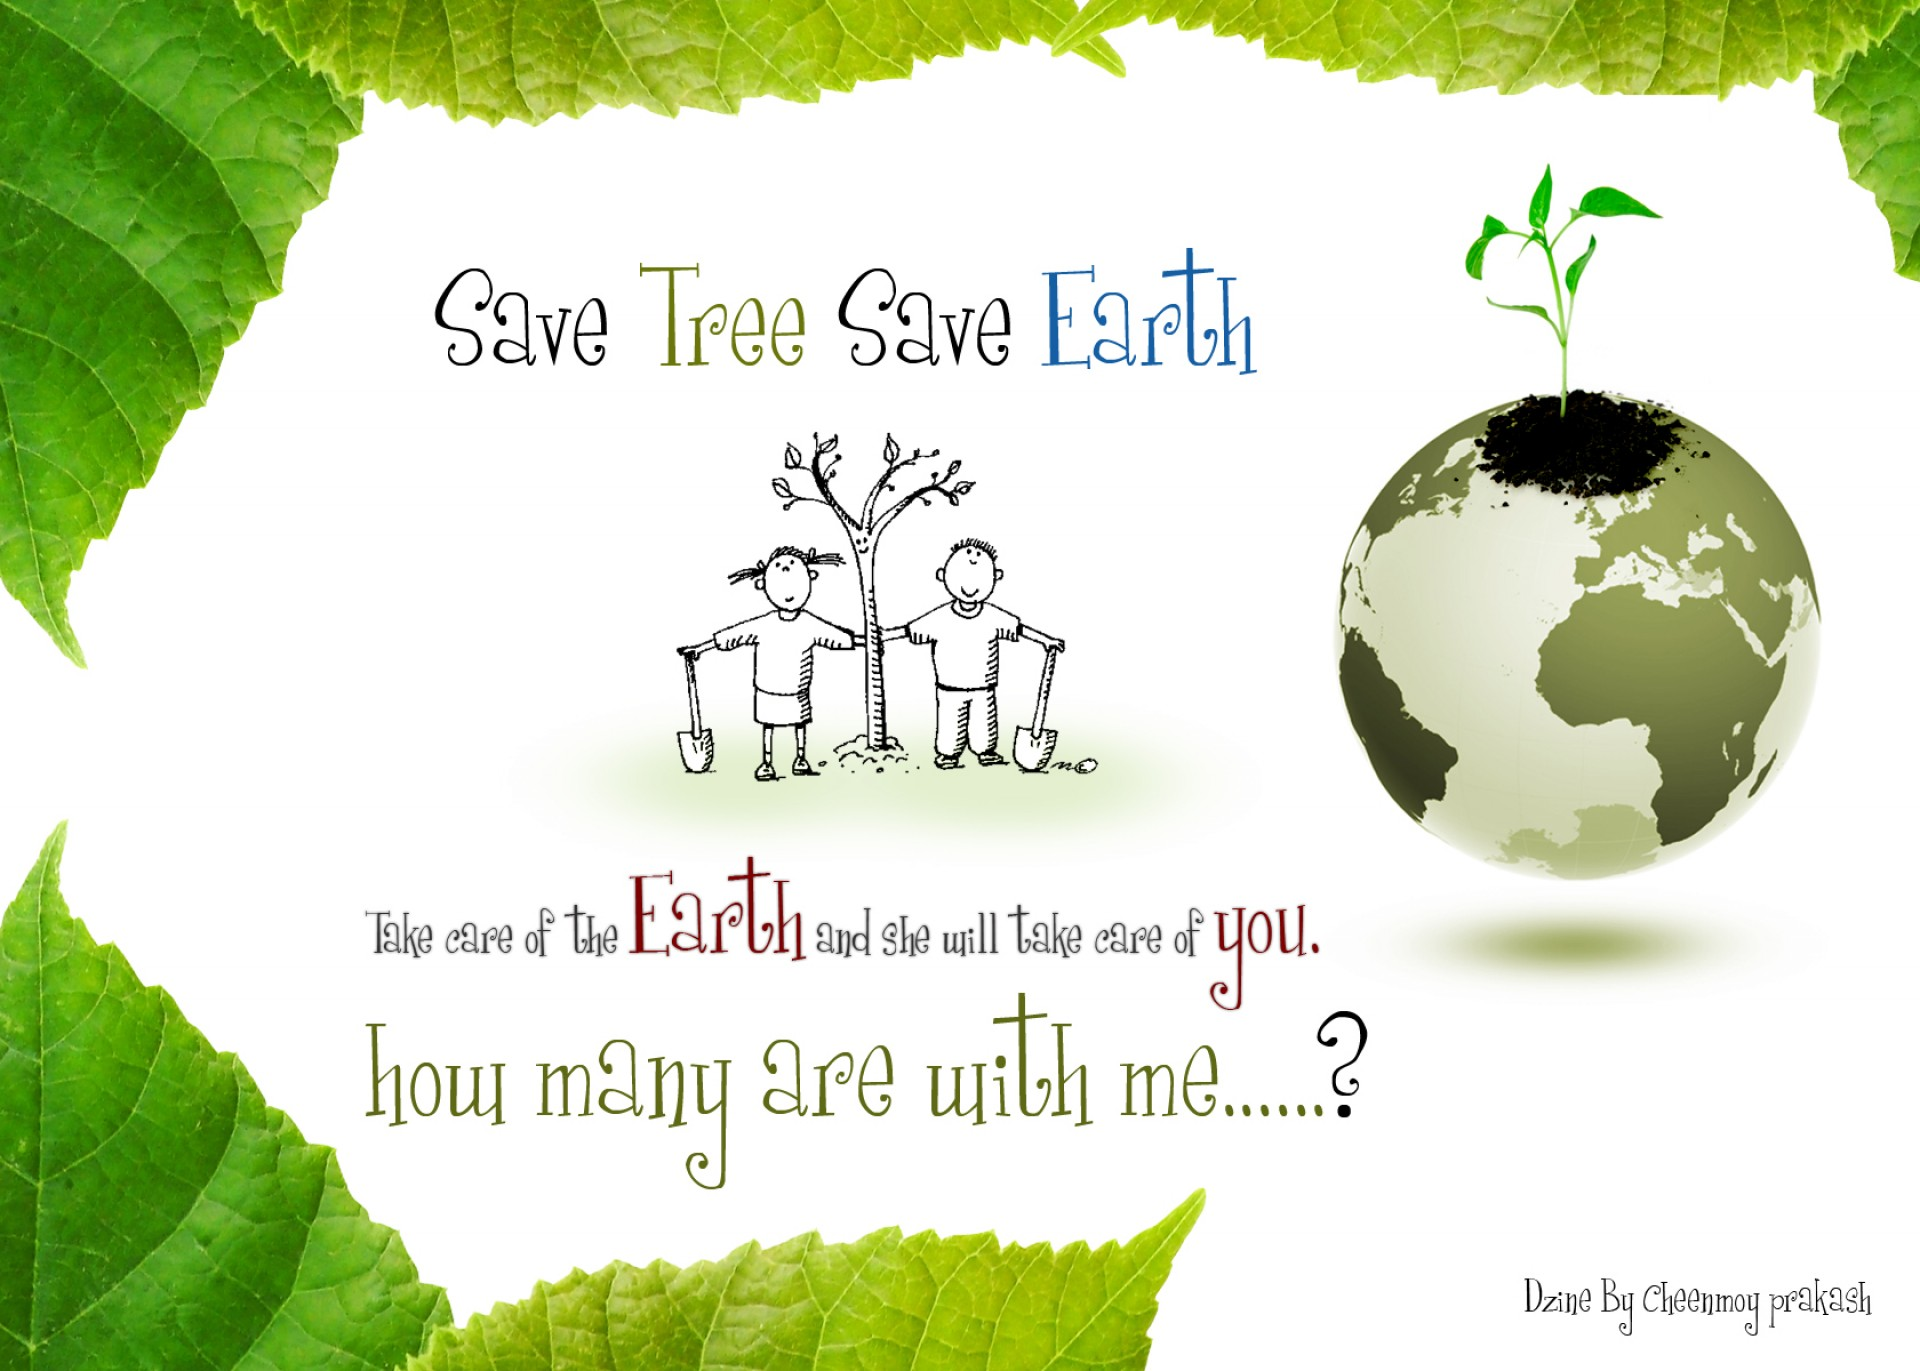 007 Original 243333 Io8htun6zsh7vh4ydejt5kgad How Can We Save Trees Essay Marvelous To In Hindi Telugu 1920